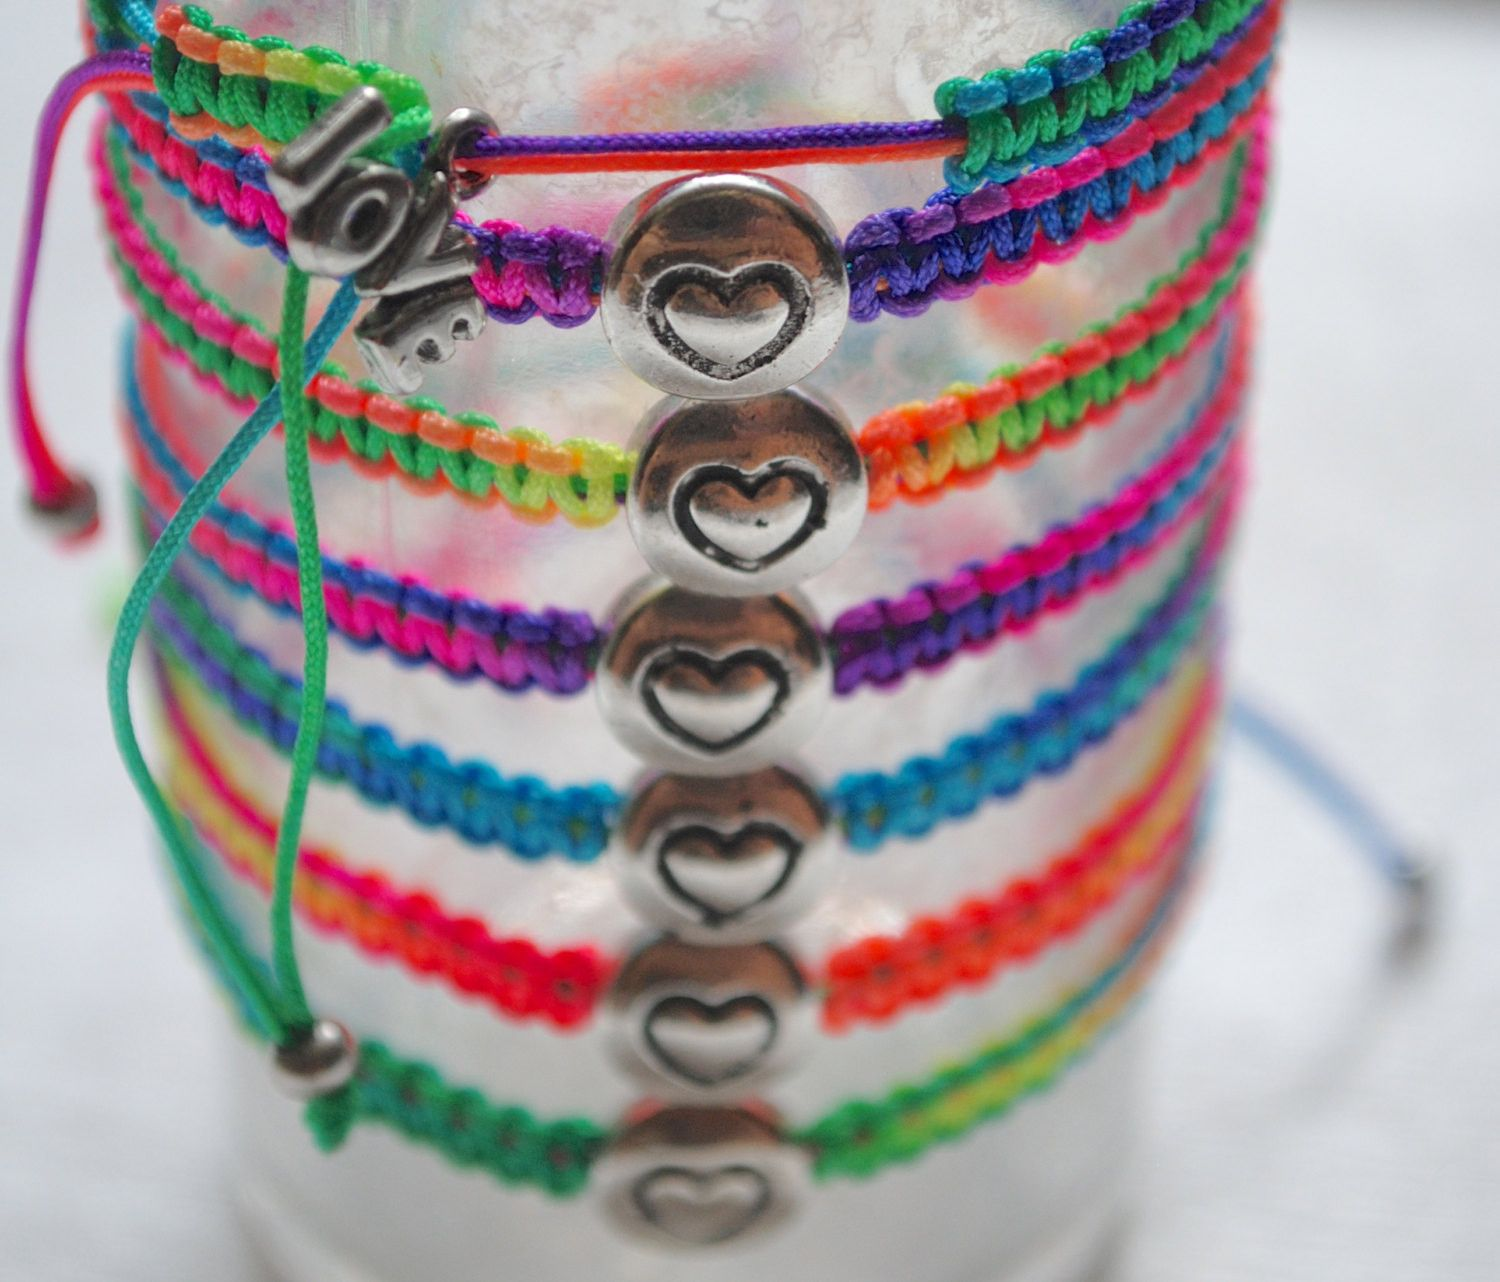 Handmade Macrame Bracelet with Silver Charm, Great Gifts or Party Favors